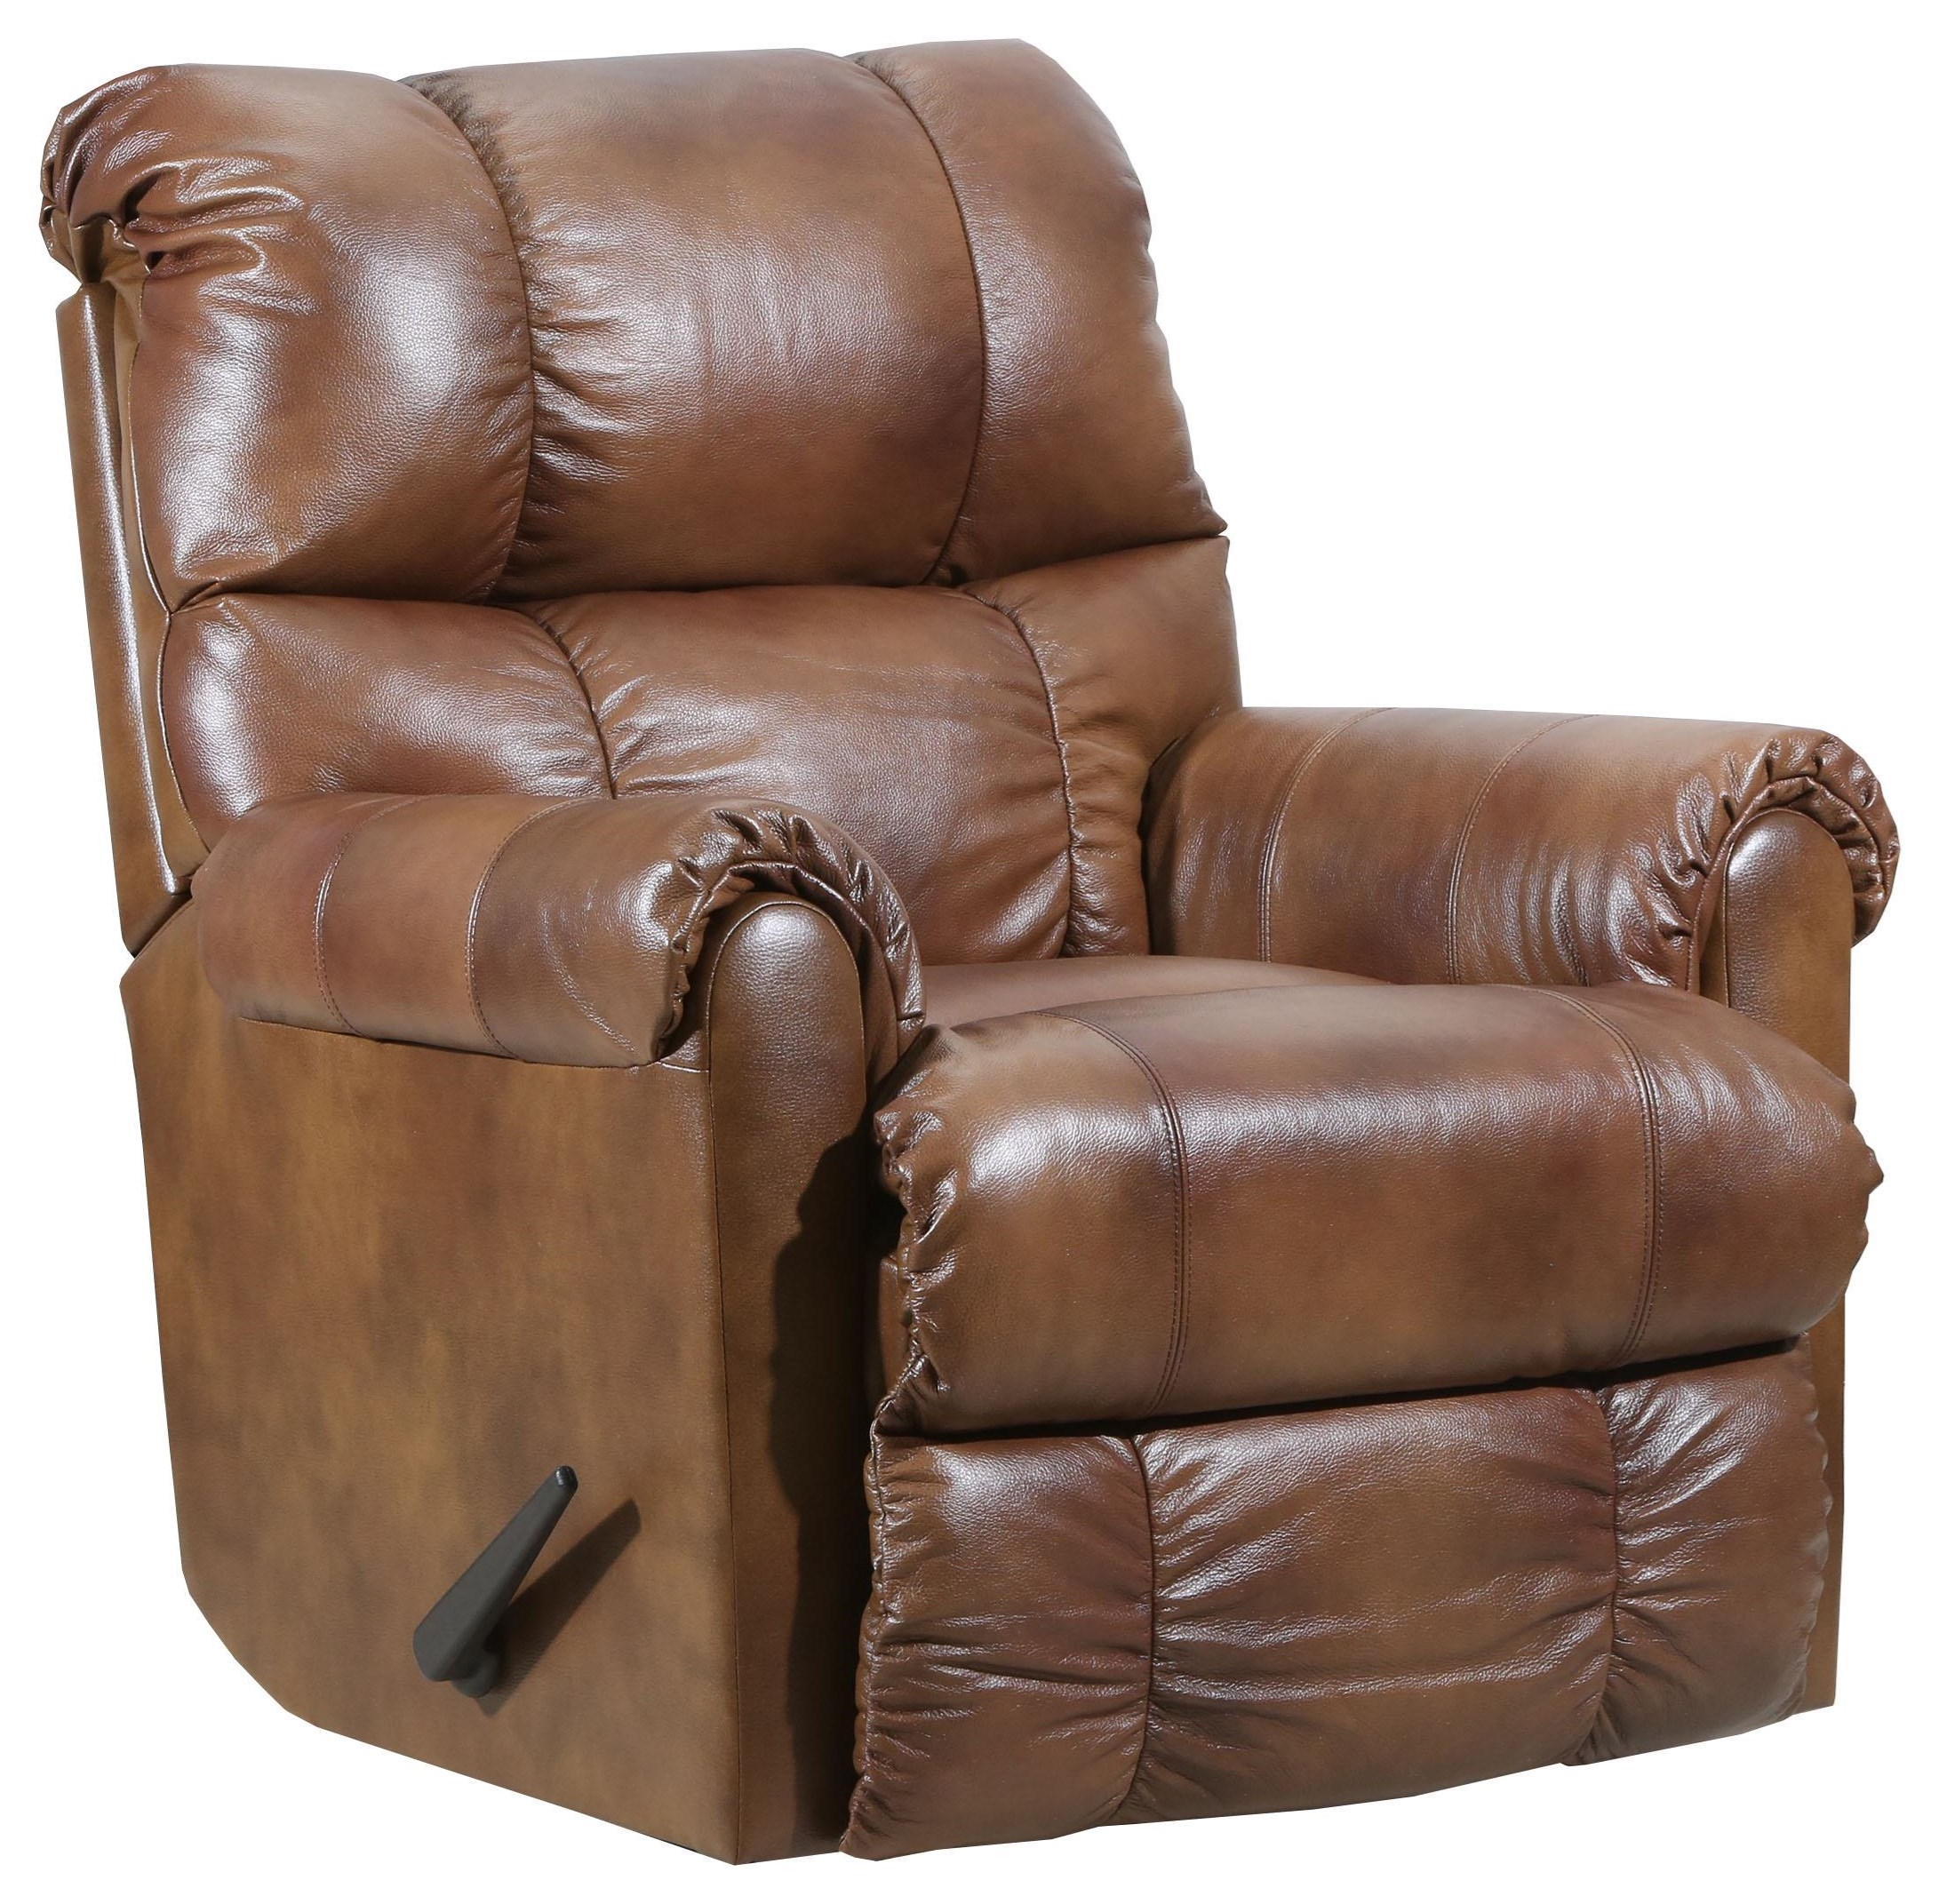 Recliners 2019 Soft Touch Leather Rocker Recliner